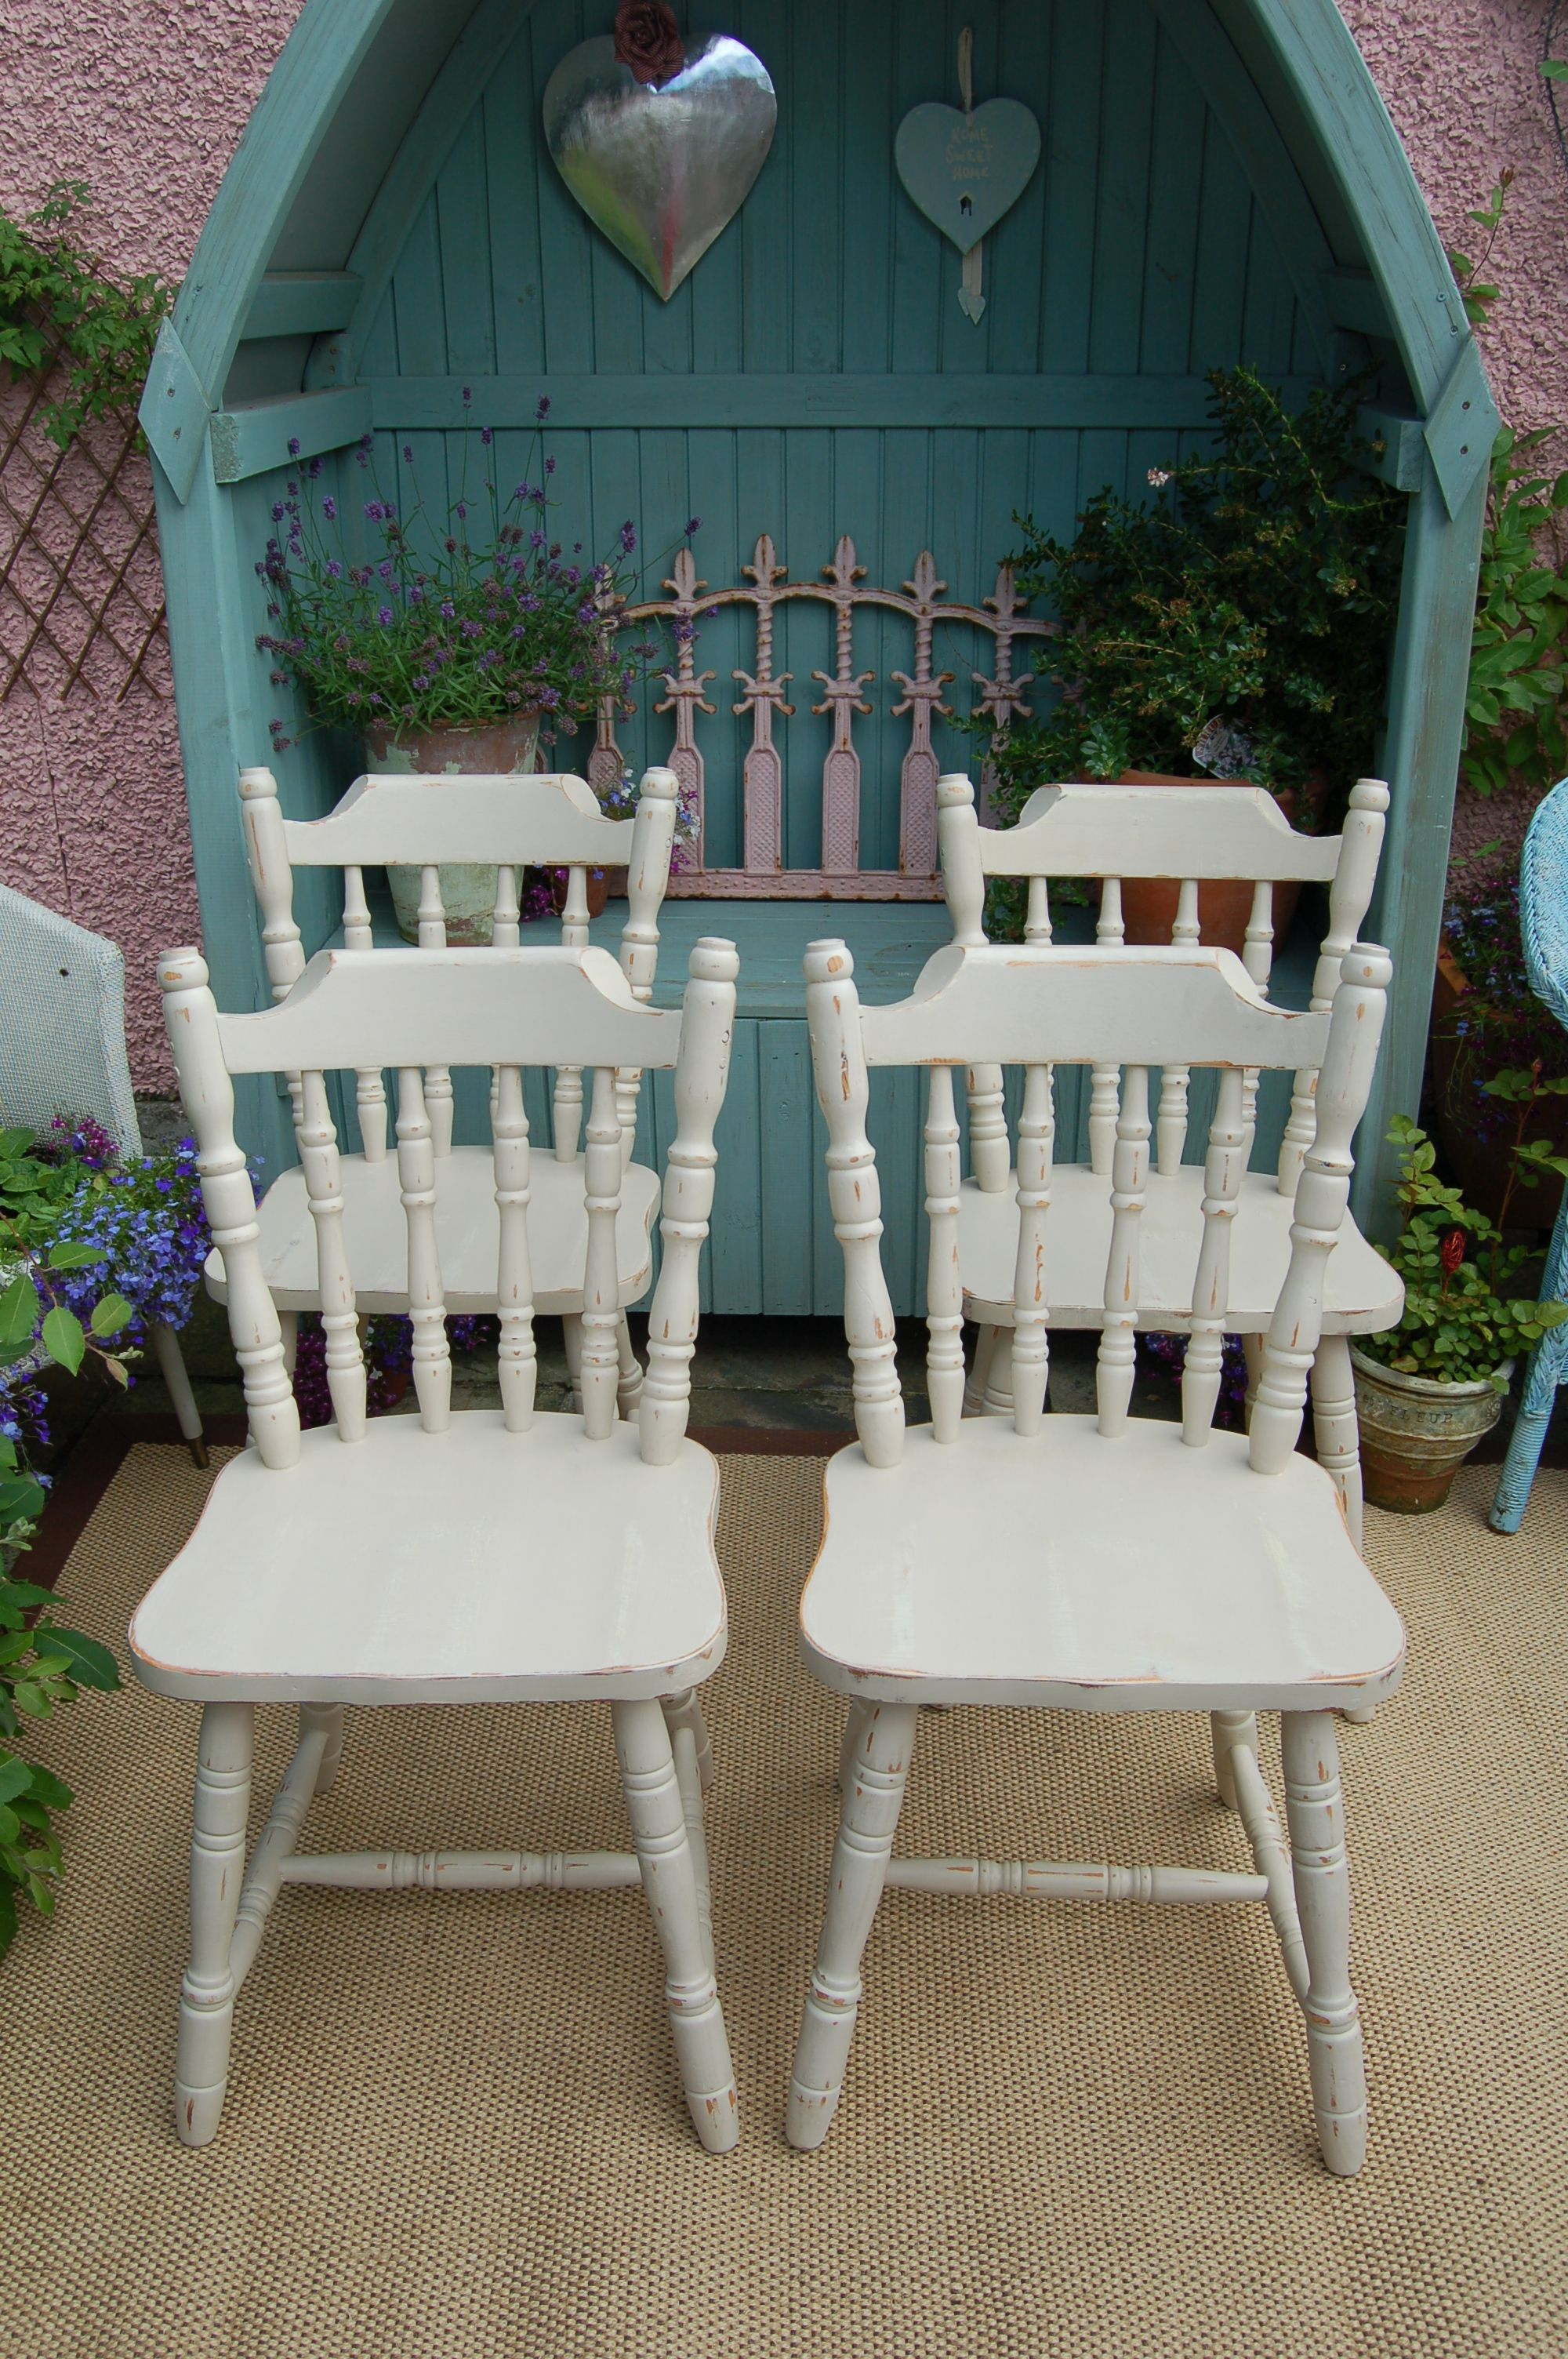 consuladoargentinomilano heritage chair lcc new adirondack wood chairs child of pany unique colorful cottage patio little beautiful